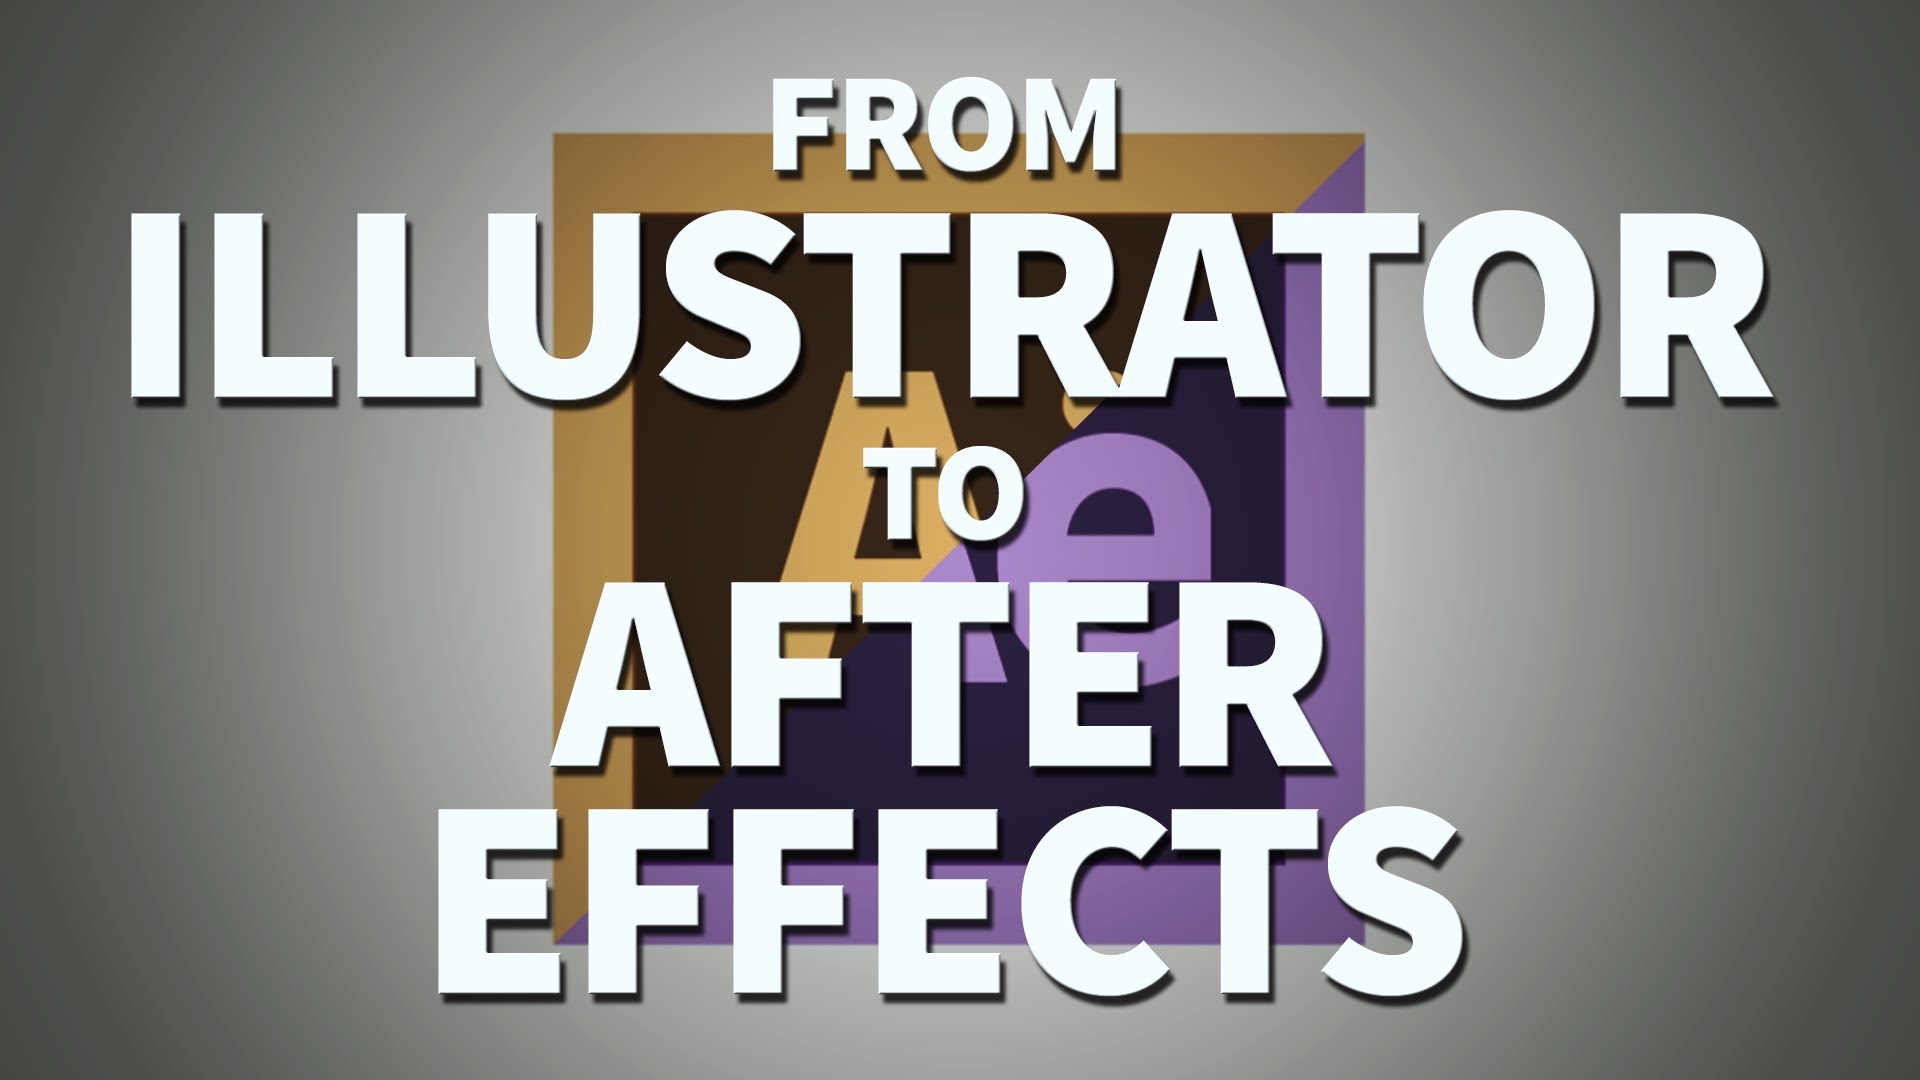 1920x1080 Working From Illustrator To After Effects